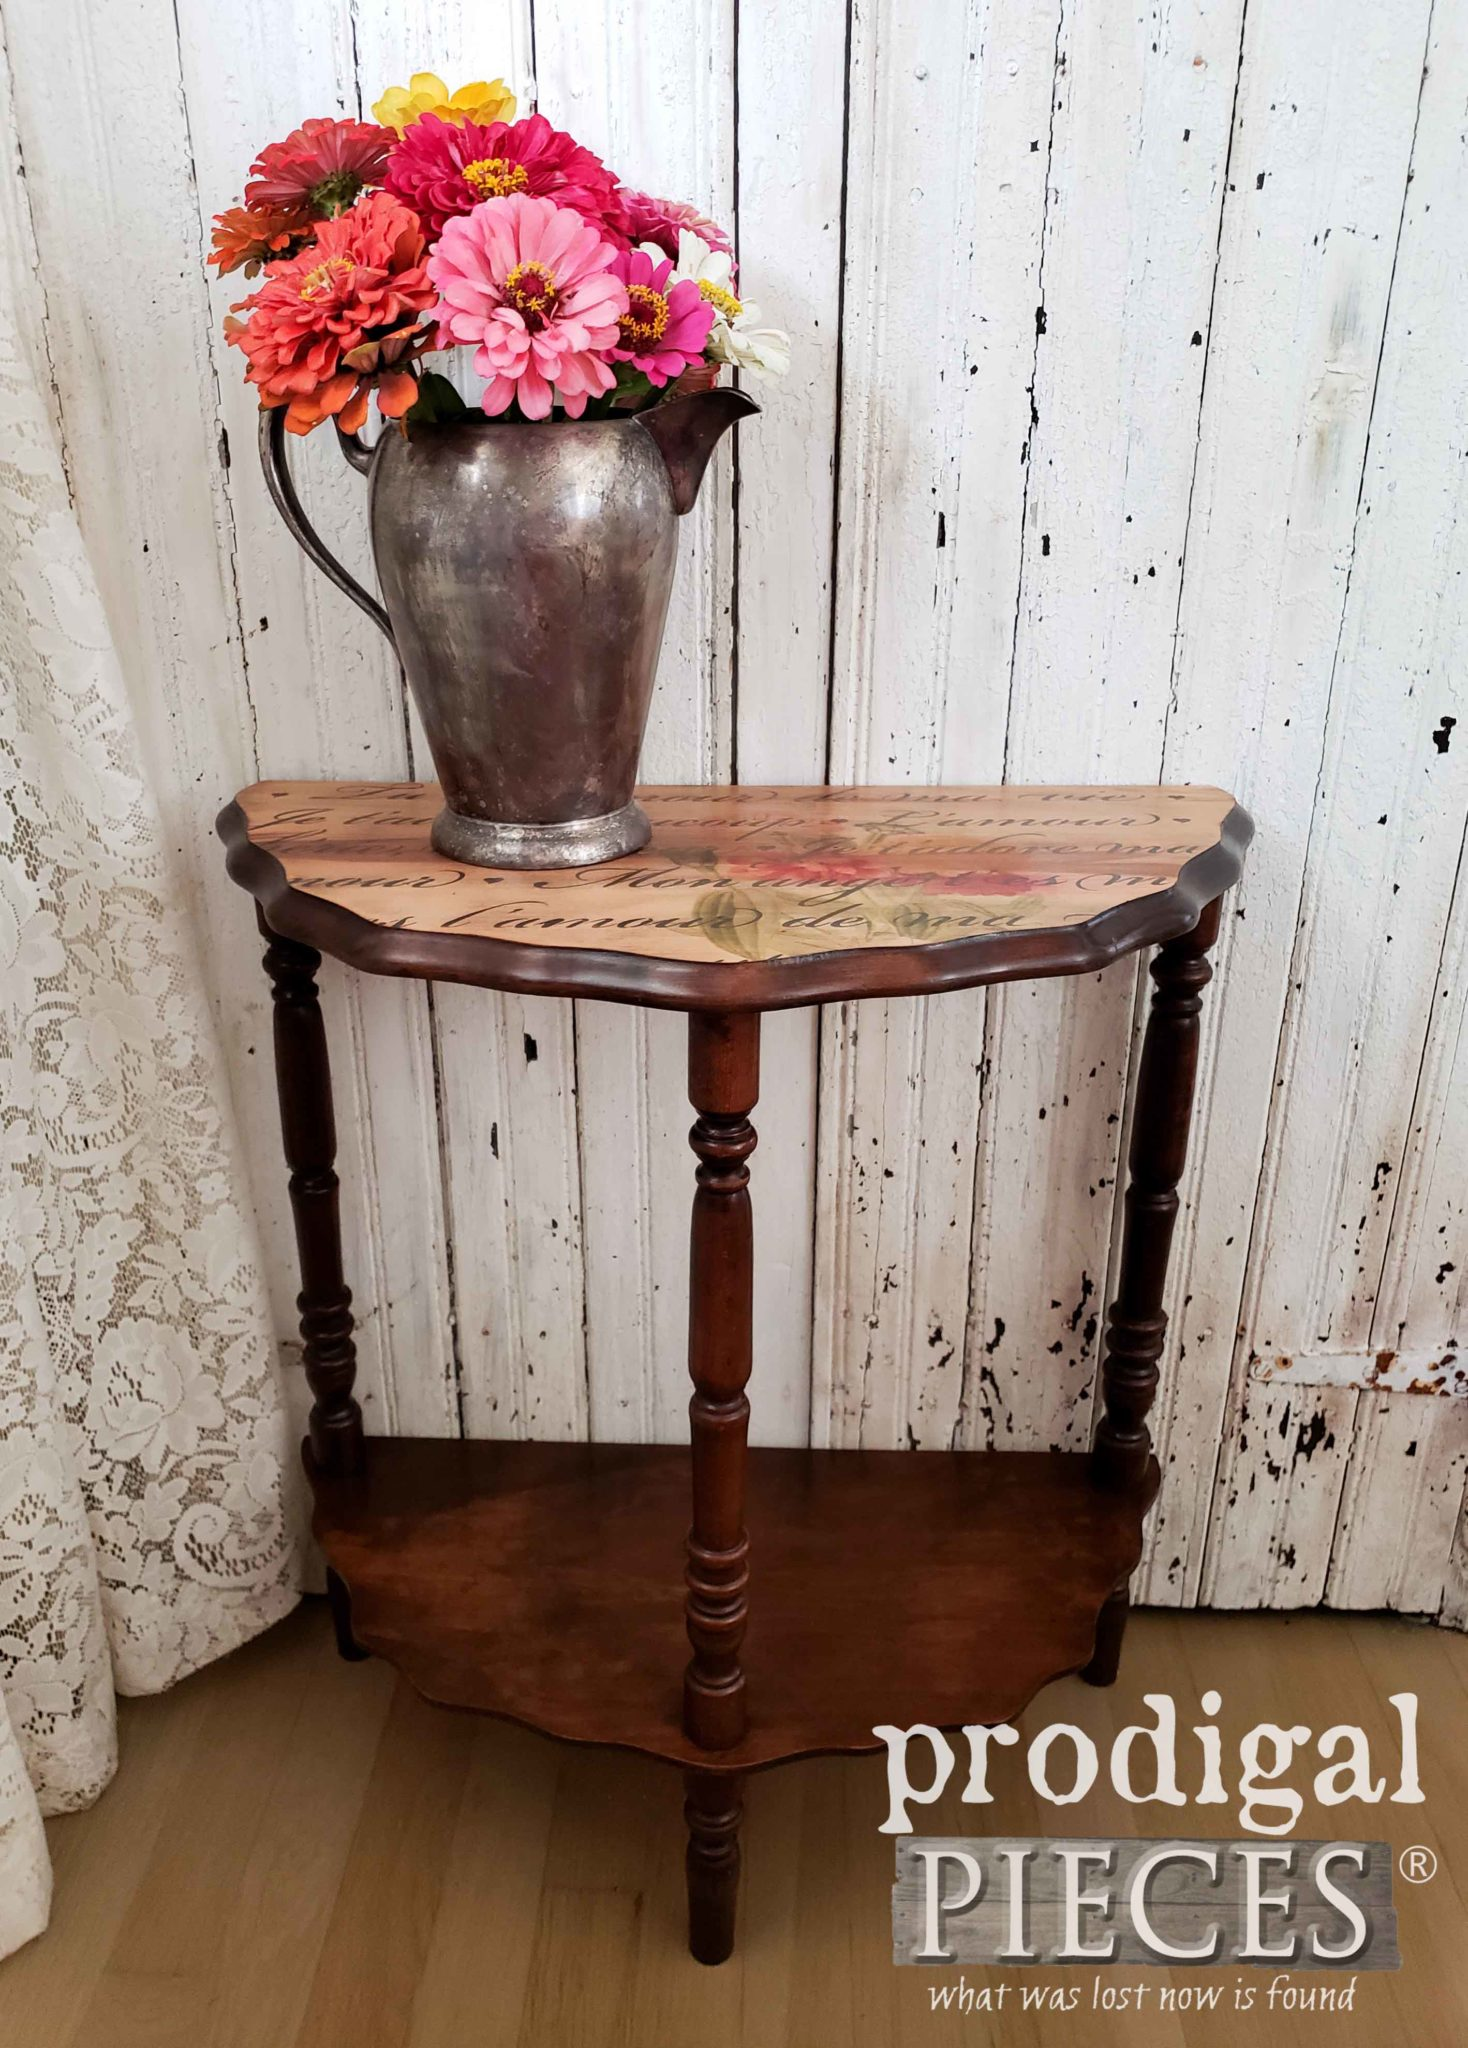 Beautiful Vintage Half-Circle Table Given New Life with DIY Image Transfer and Stenciling by Larissa of Prodigal Pieces | prodigalpieces.com